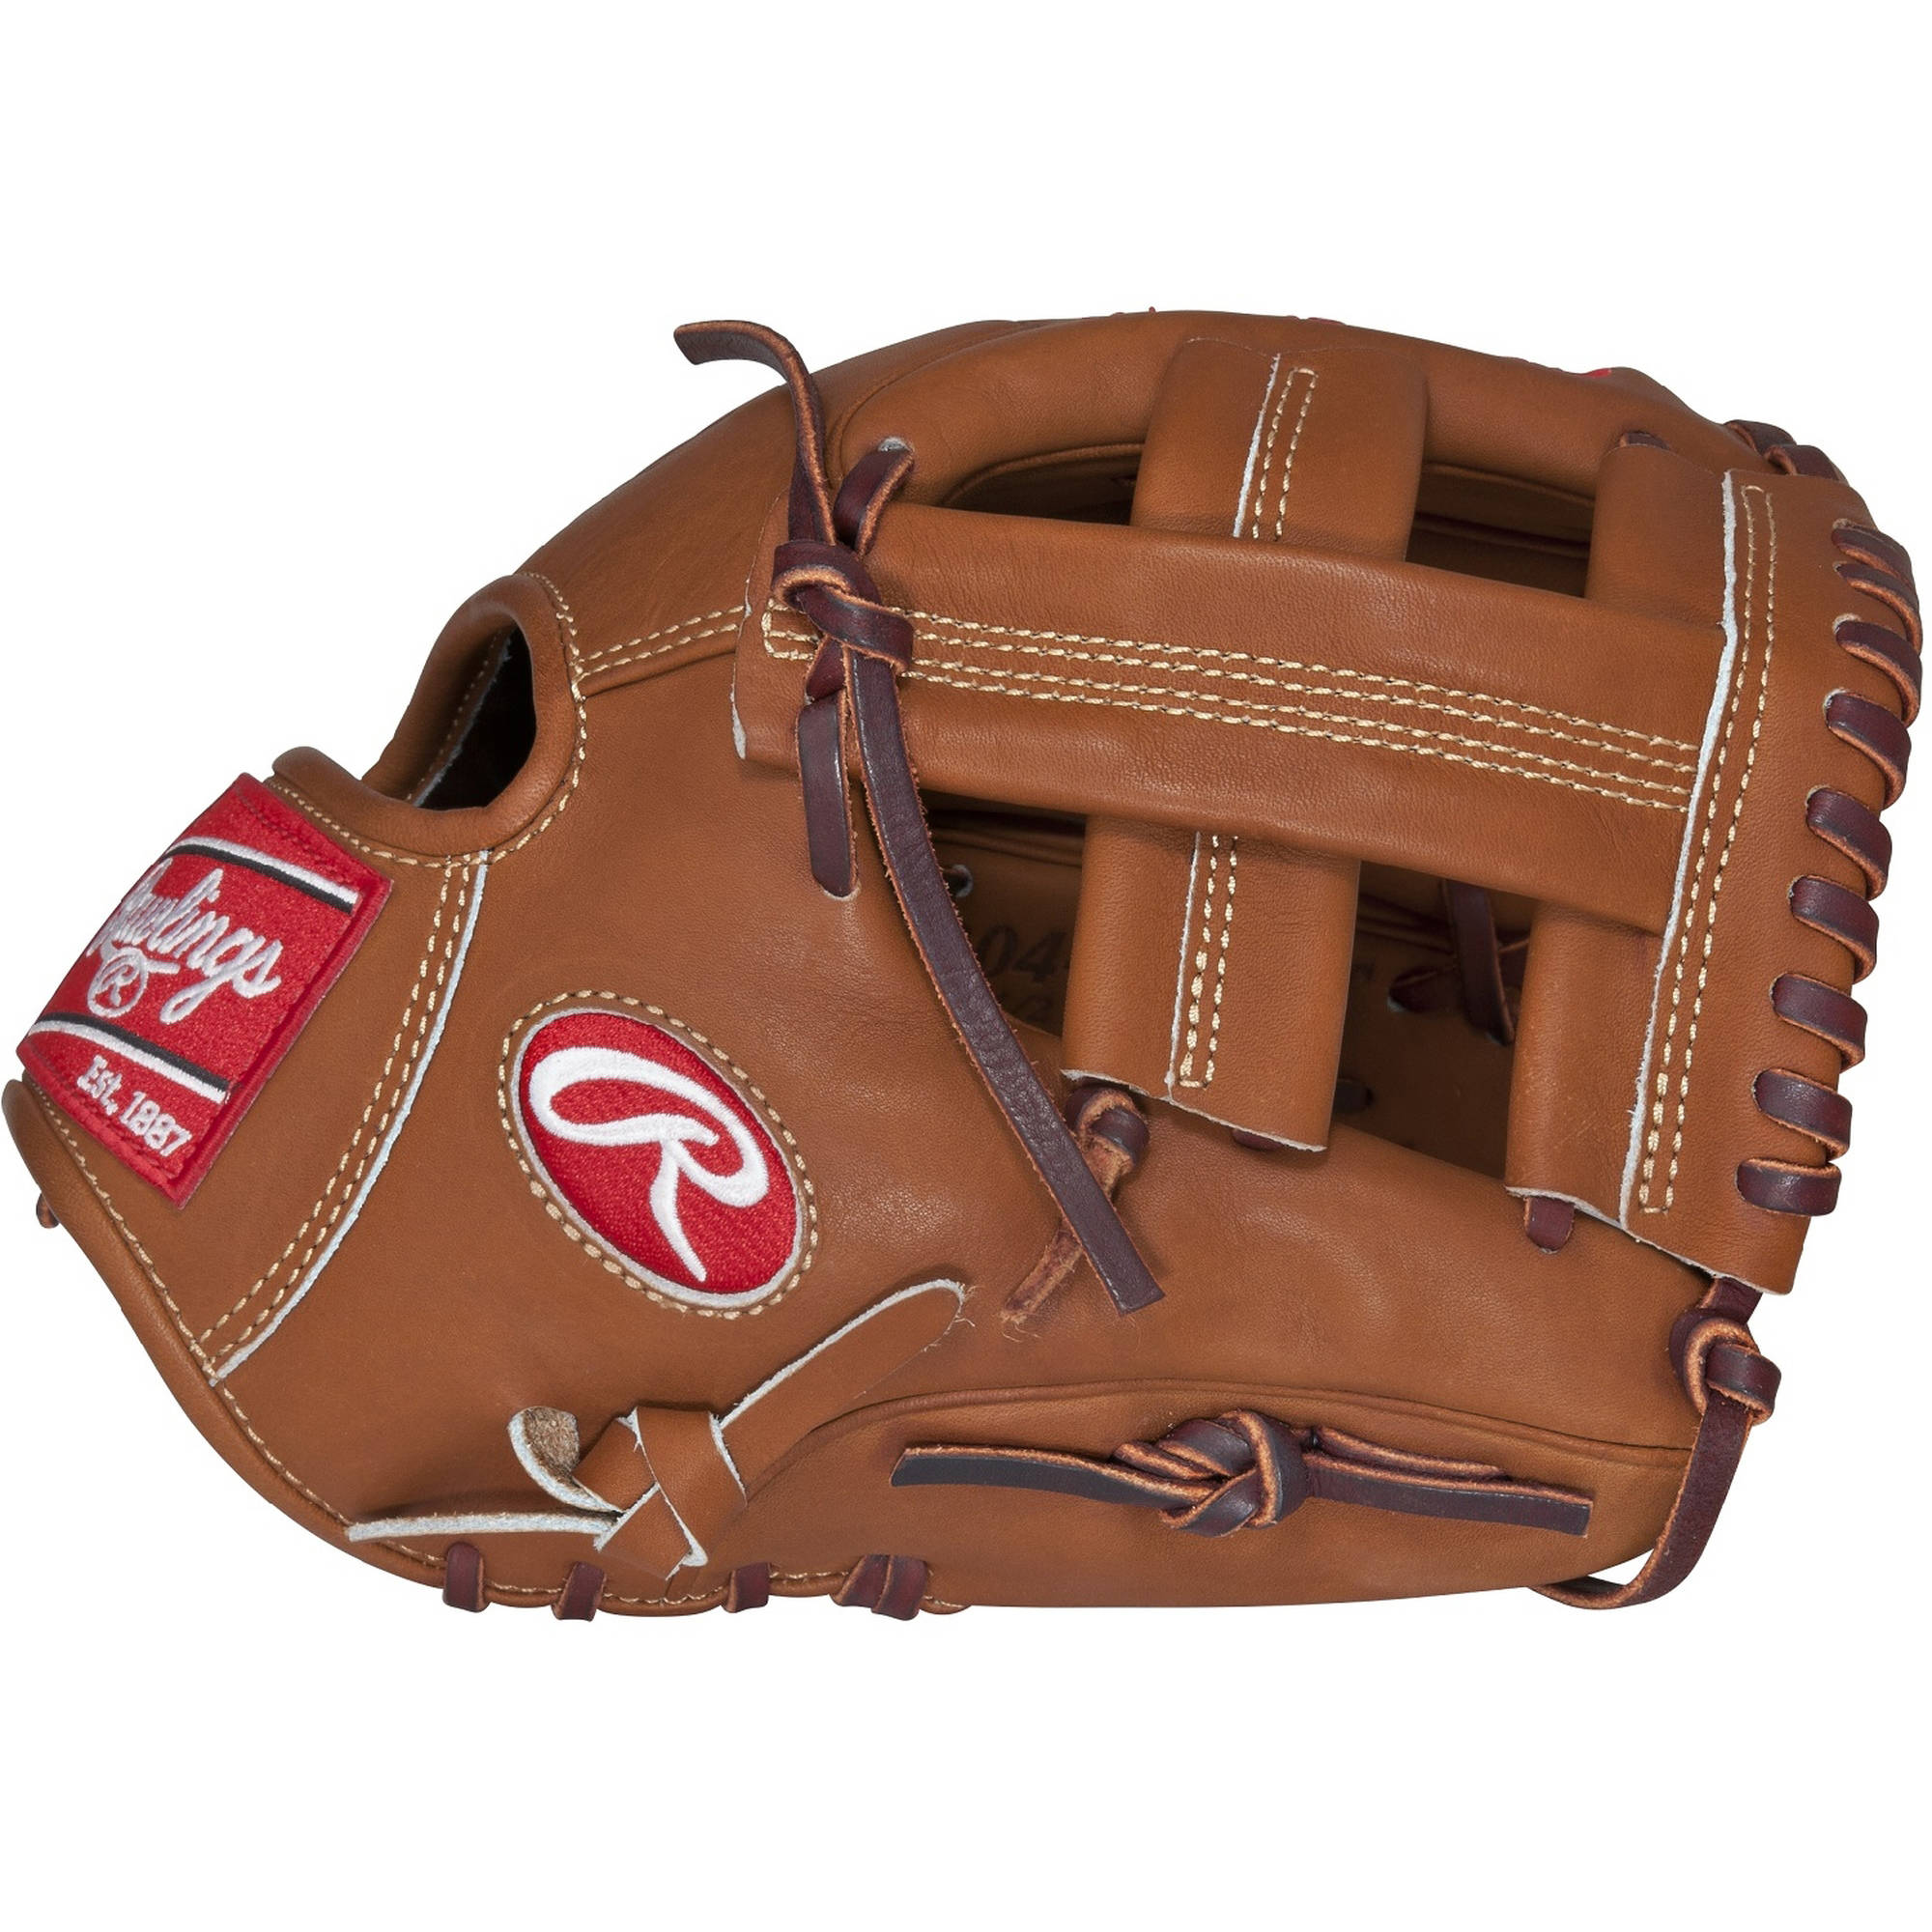 "Rawlings Heart of the Hide 12"" Baseball Glove by Rawlings"